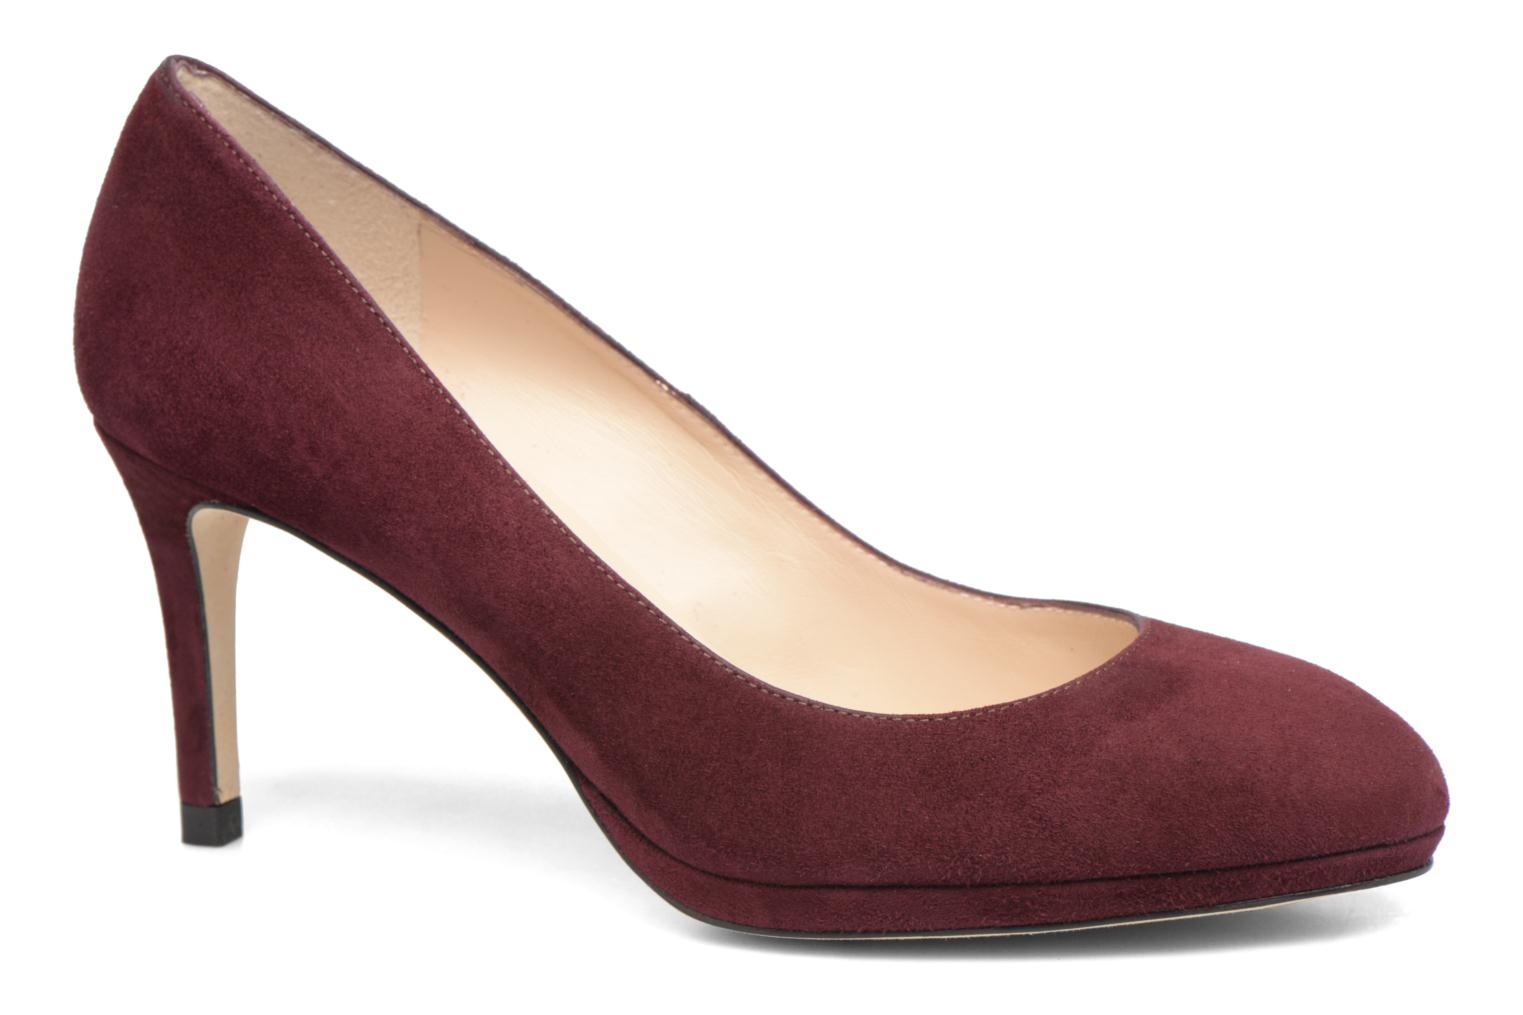 New Sybila Red Oxblood Suede